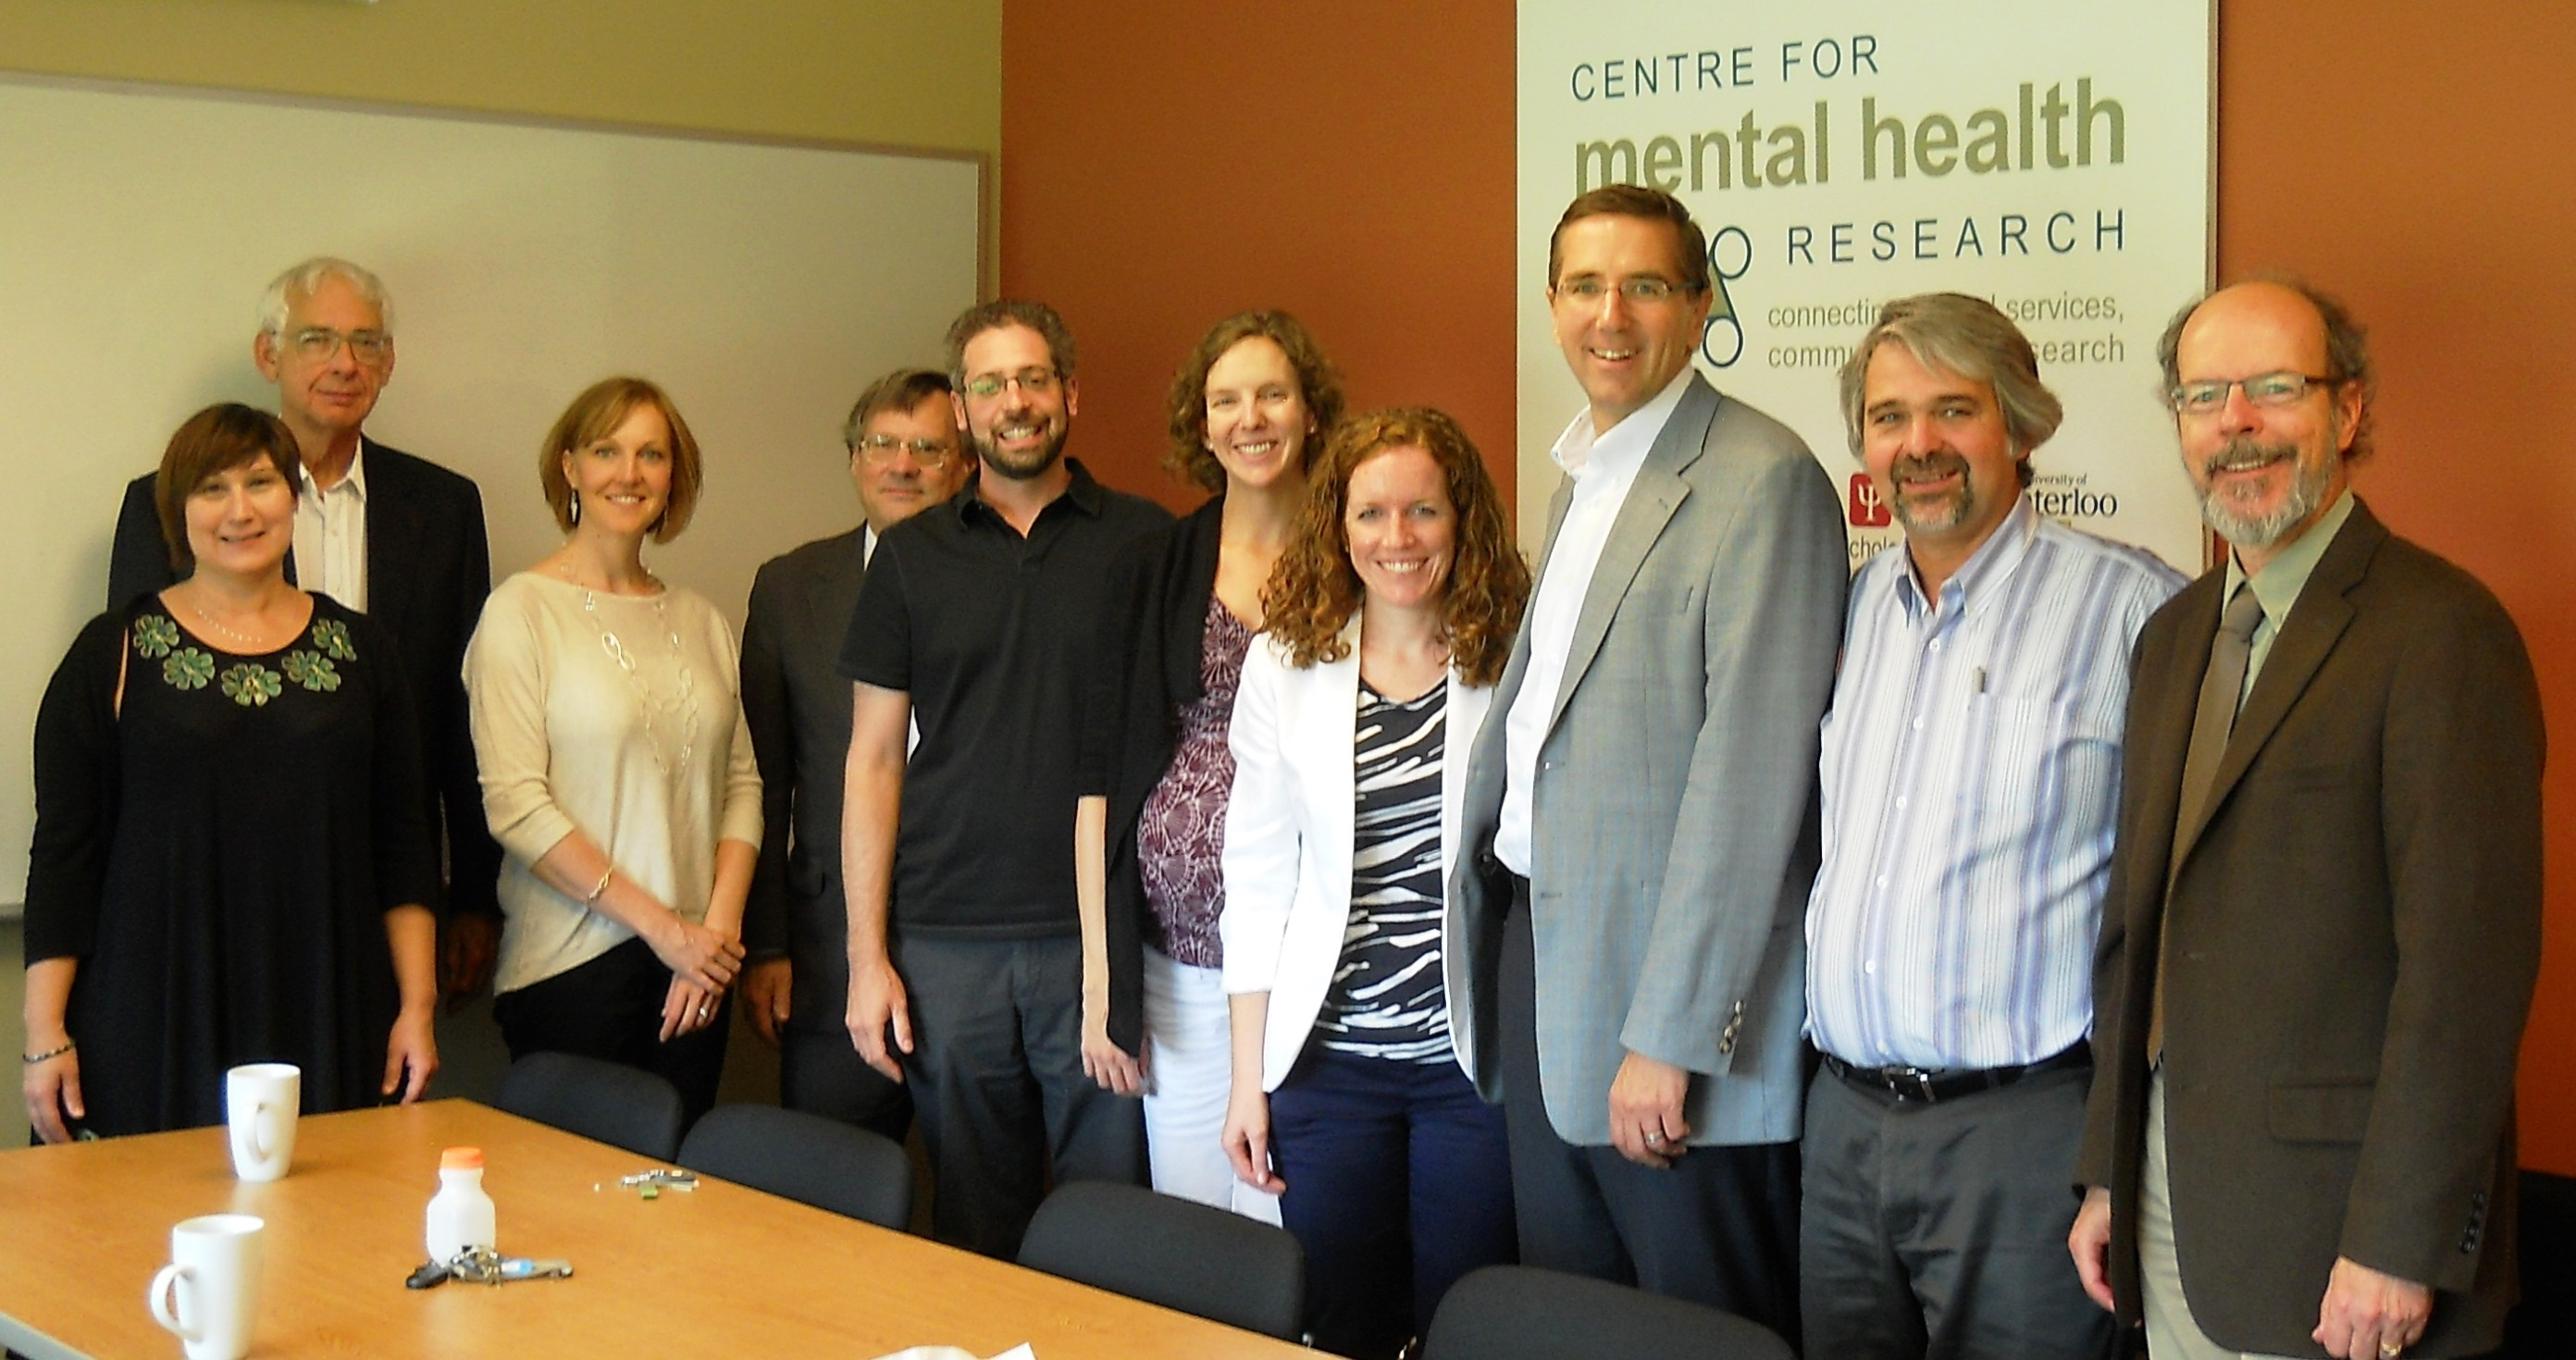 MPP John Milloy with Centre for Mental Health Research members